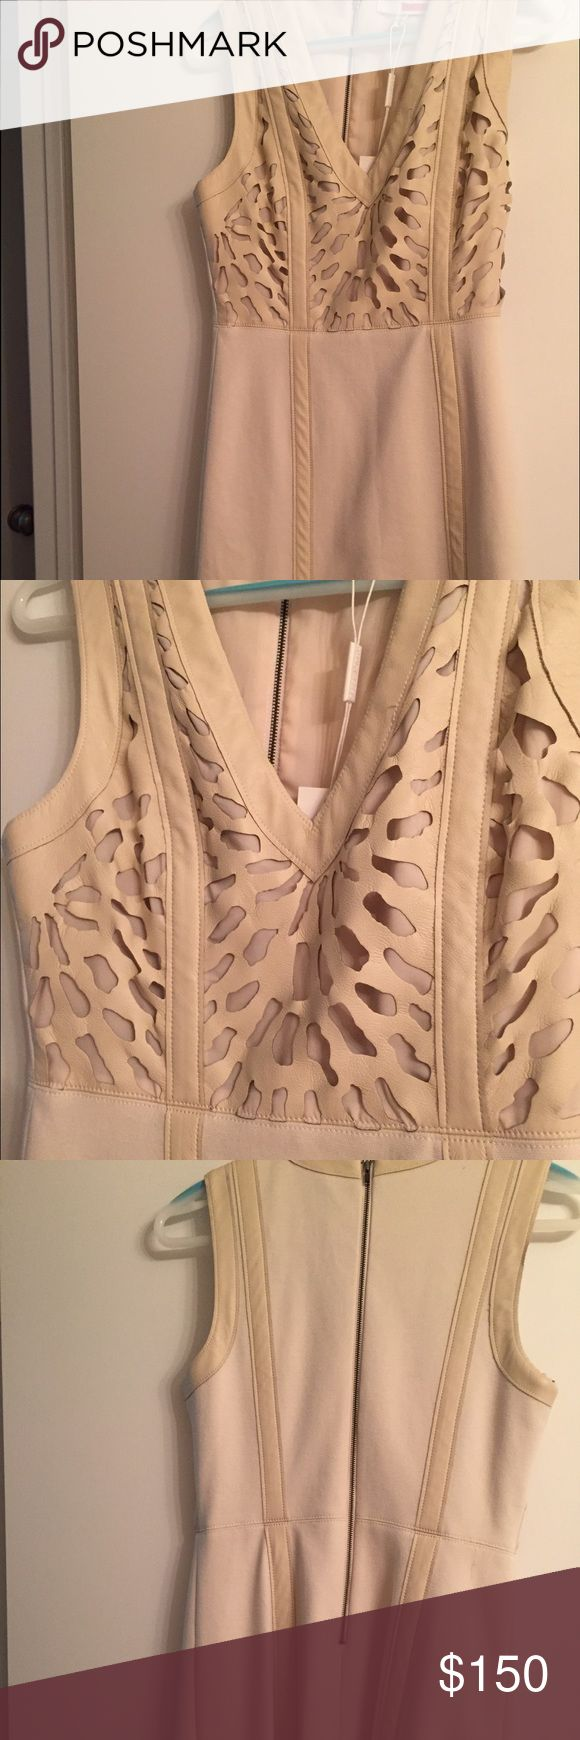 For 30 min. $100 for Tracy Reese Dress🎉 Tracy Reese Dress with Laser cutouts on bodice..  Sleeveless with v -neck.  Great for Dinners, weddings or parties.👗. Please use offer button and no trades are accepted.  Thank you🛍 Tracy Reese Dresses Asymmetrical